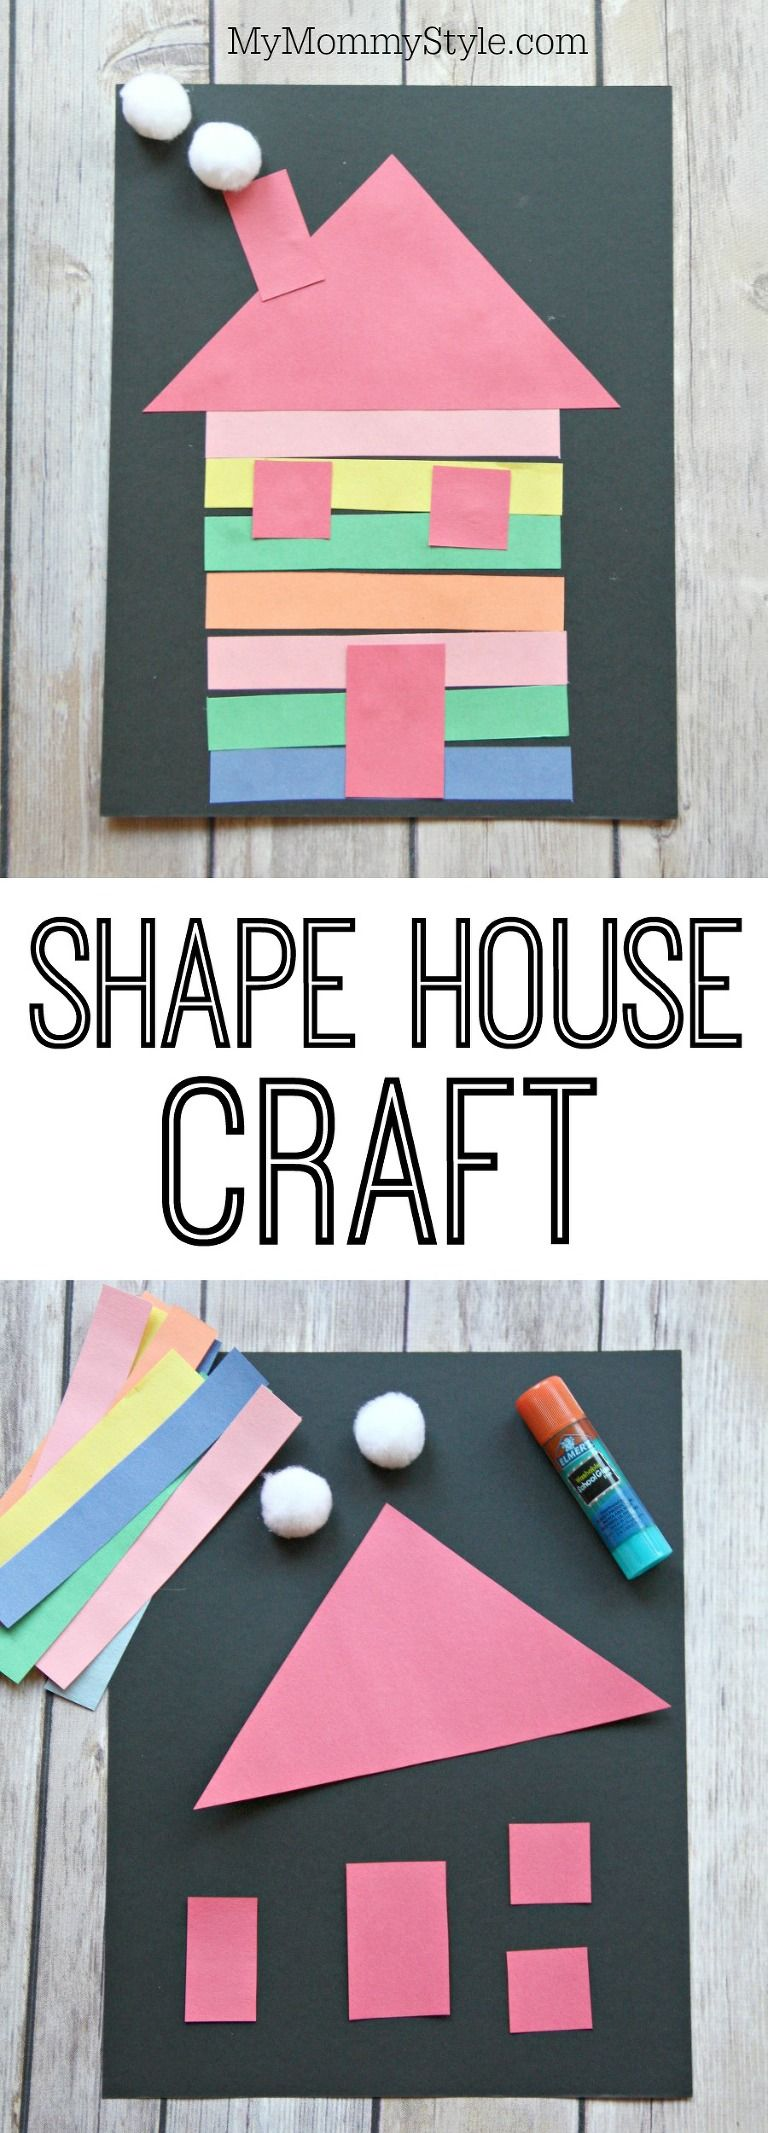 Colorful shape house craft